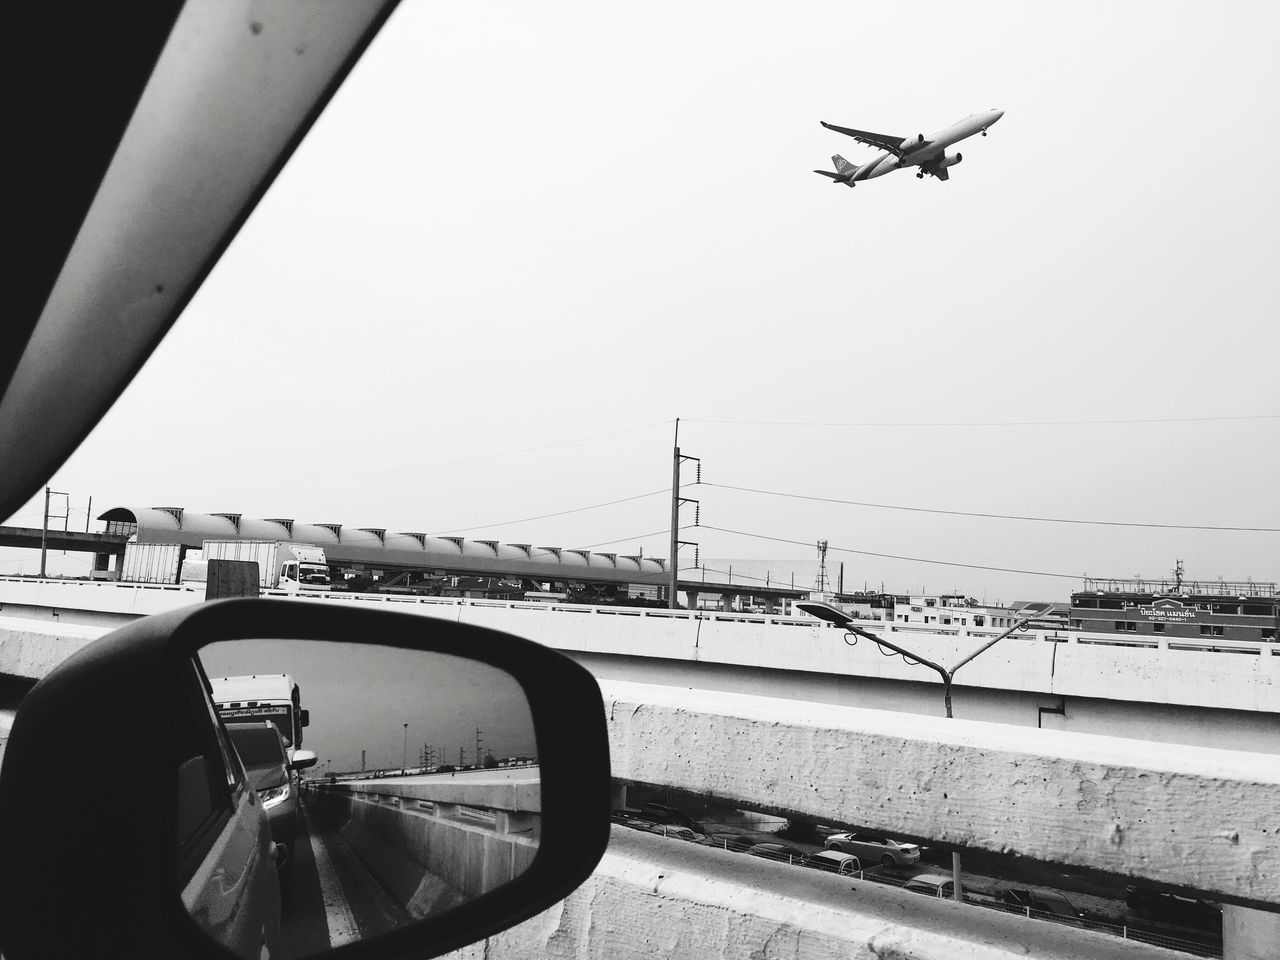 Suwannabhumiairport Transportation Mode Of Transport Flying Air Vehicle Architecture Day Journey Bridge - Man Made Structure Clear Sky Mid-air Built Structure Airplane Road One Person Outdoors Sky Water People Traffic Jam